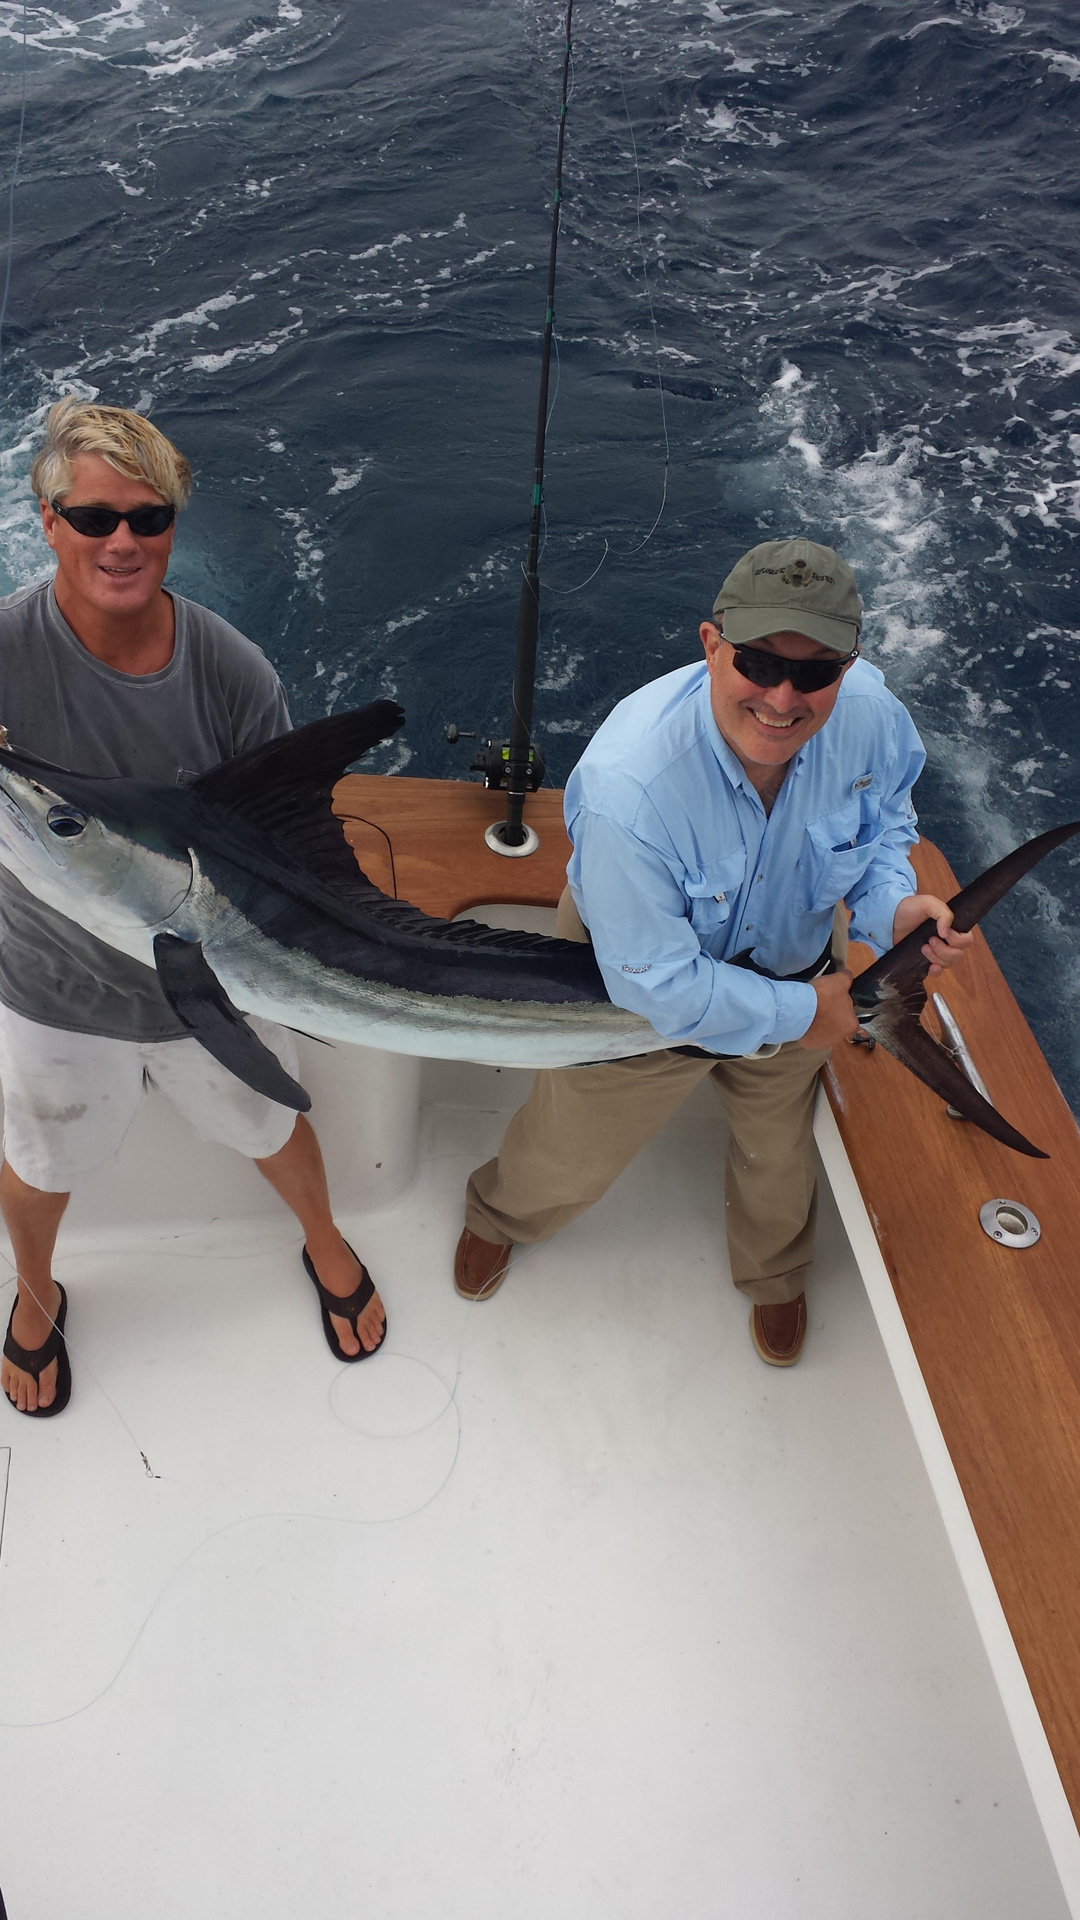 Great say with 3 white marlin and 47 dolphin. Jack and his crew had a beautiful day.